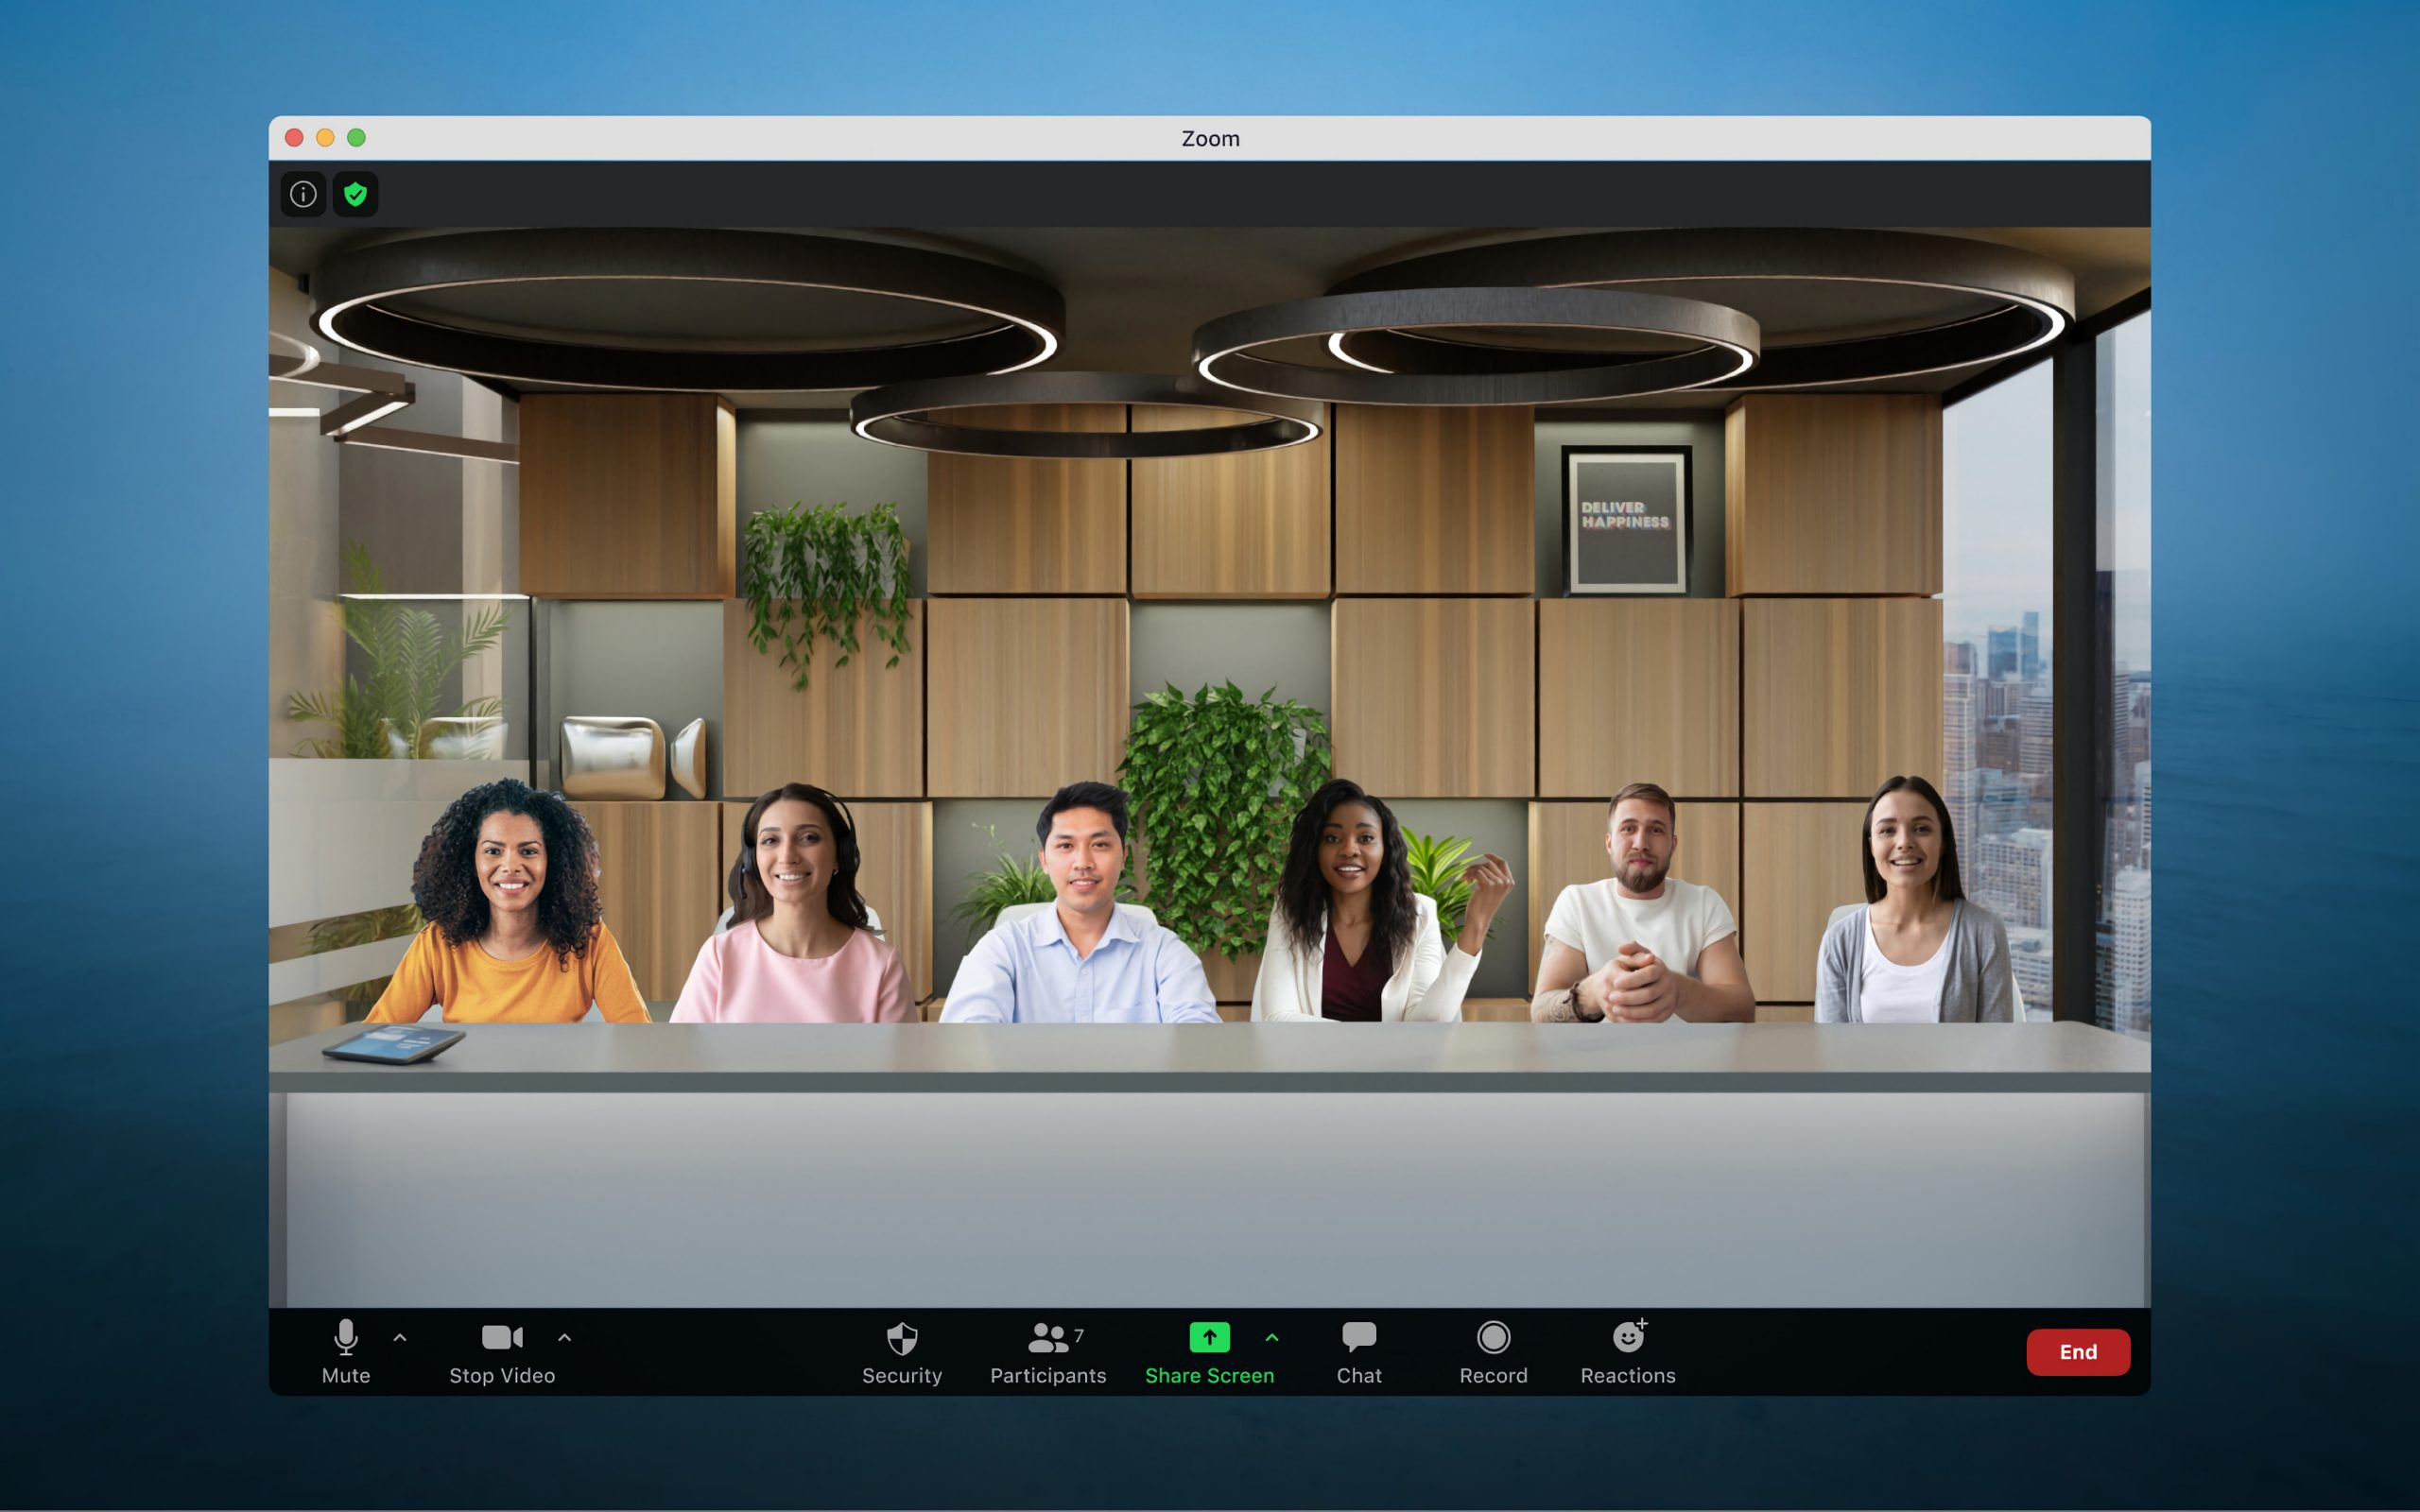 Zoom activates an option to make your video calling more fun